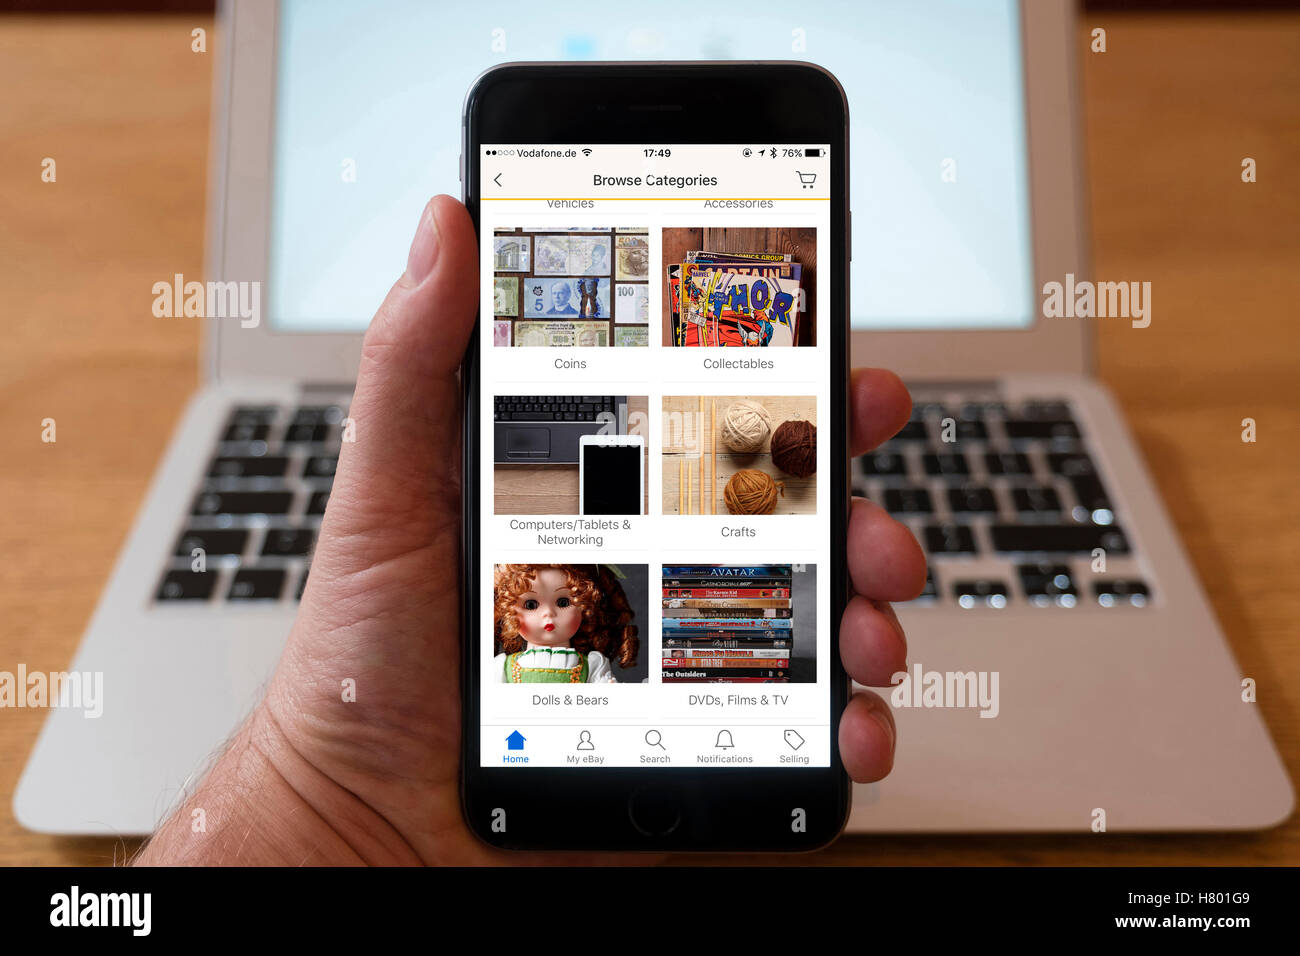 Using iPhone smartphone to display categories of products for auction and sale on eBay - Stock Image